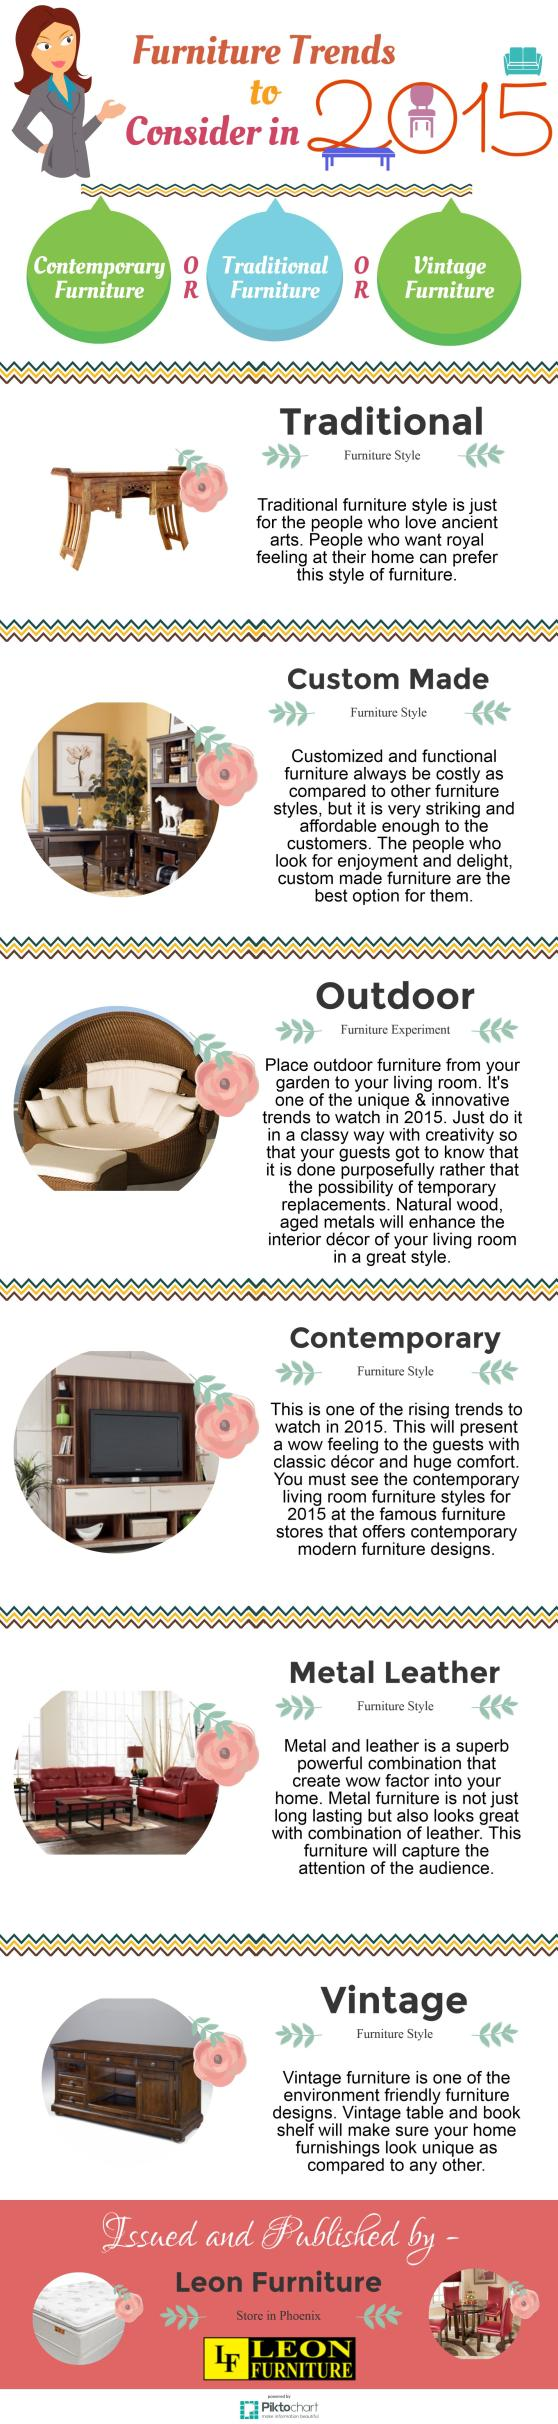 Furniture Trends in 2015